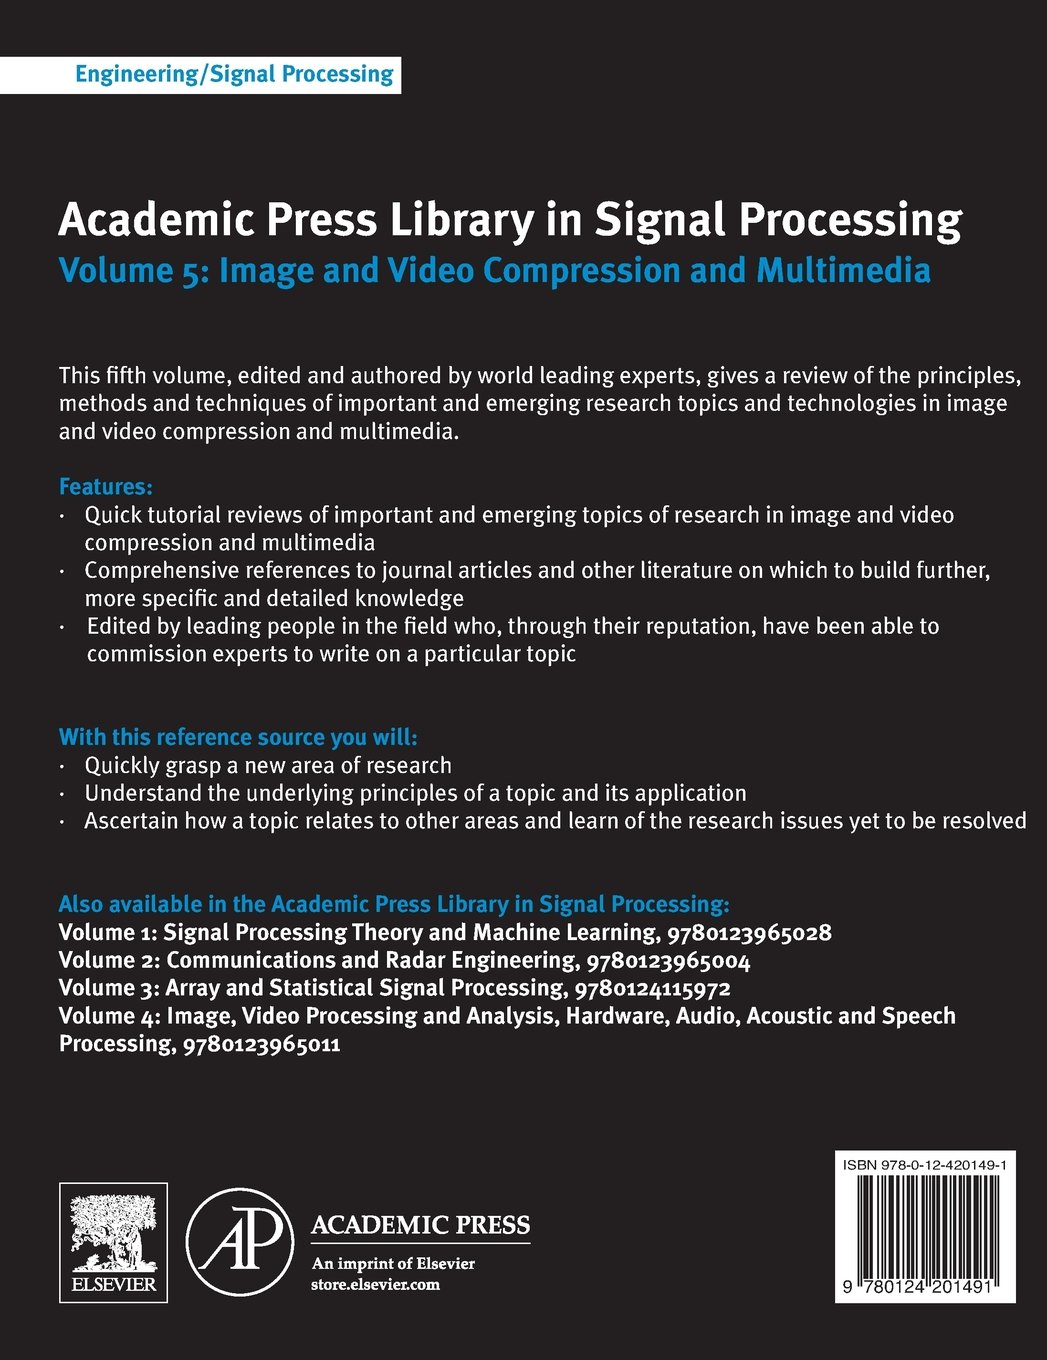 Buy 5 academic press library in signal processing image and buy 5 academic press library in signal processing image and video compression and multimedia book online at low prices in india 5 academic press baditri Gallery